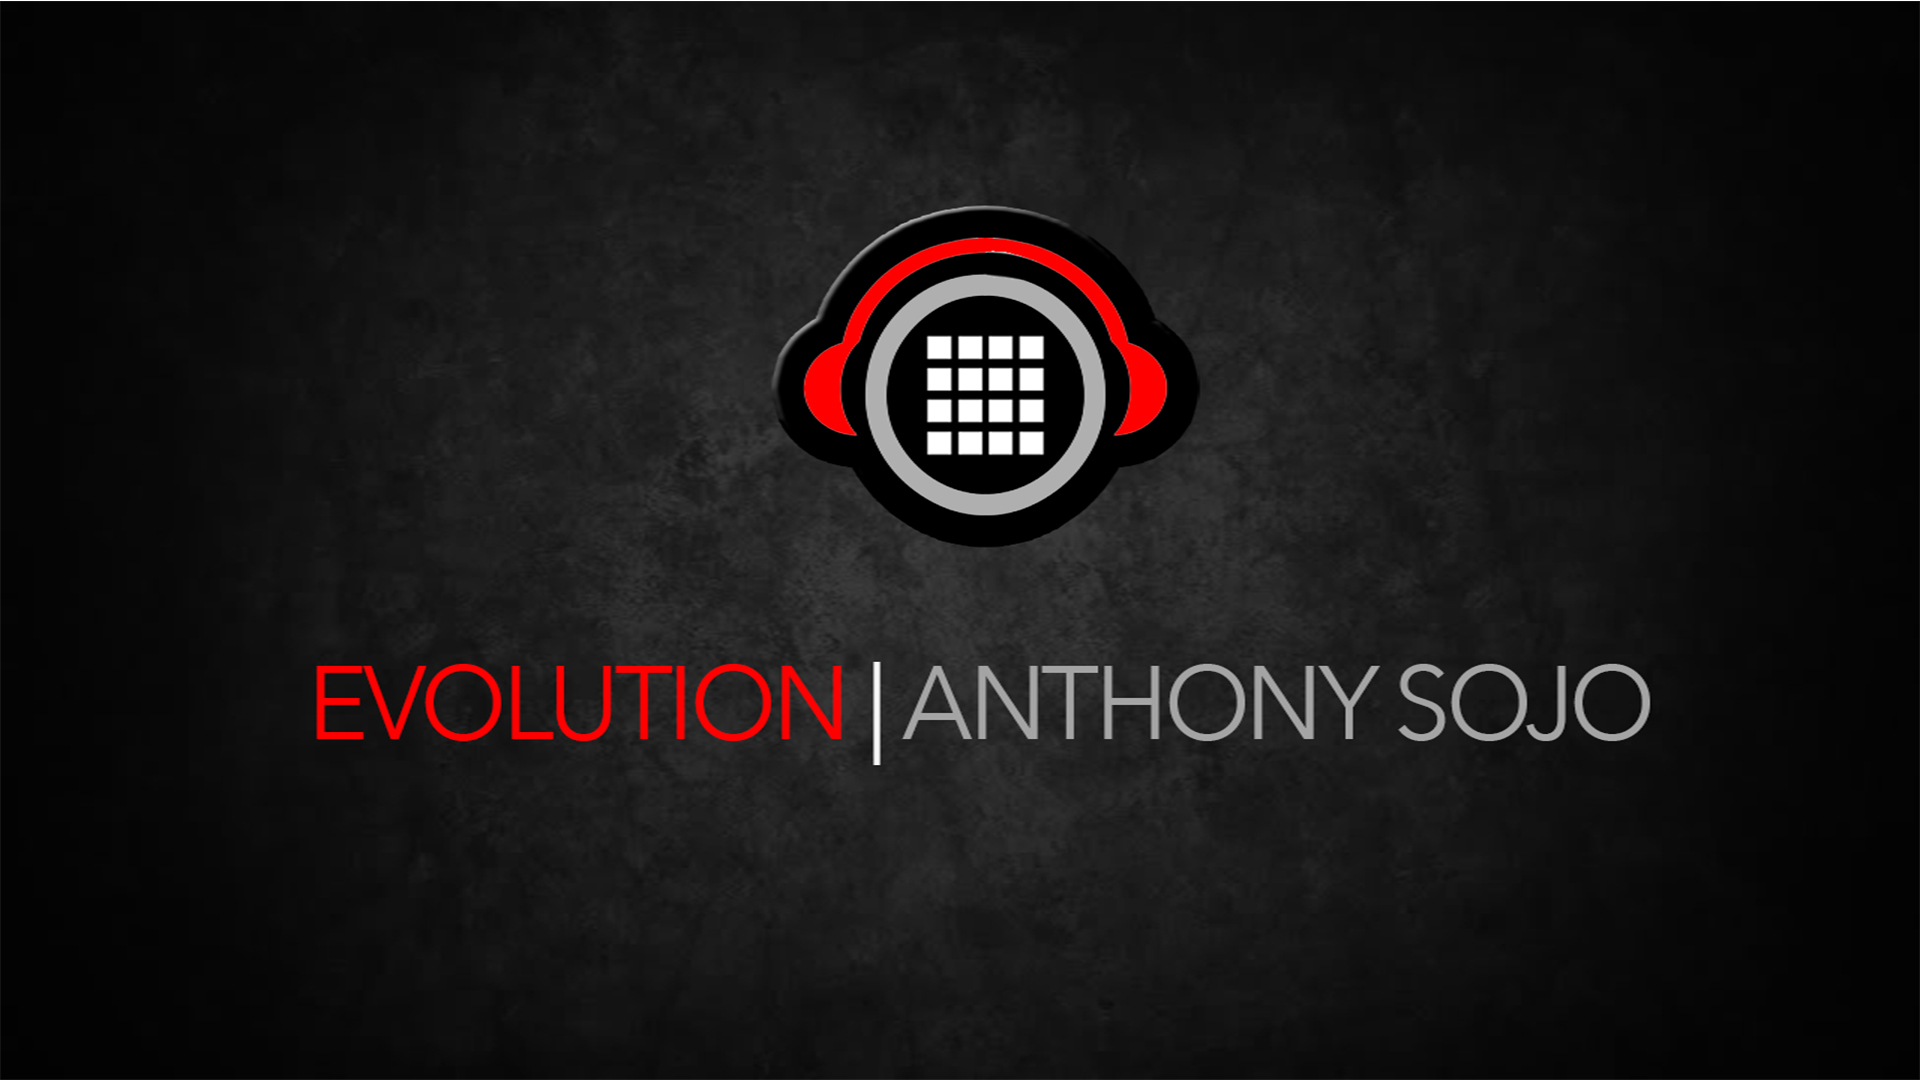 Evolution_anthony_sojo